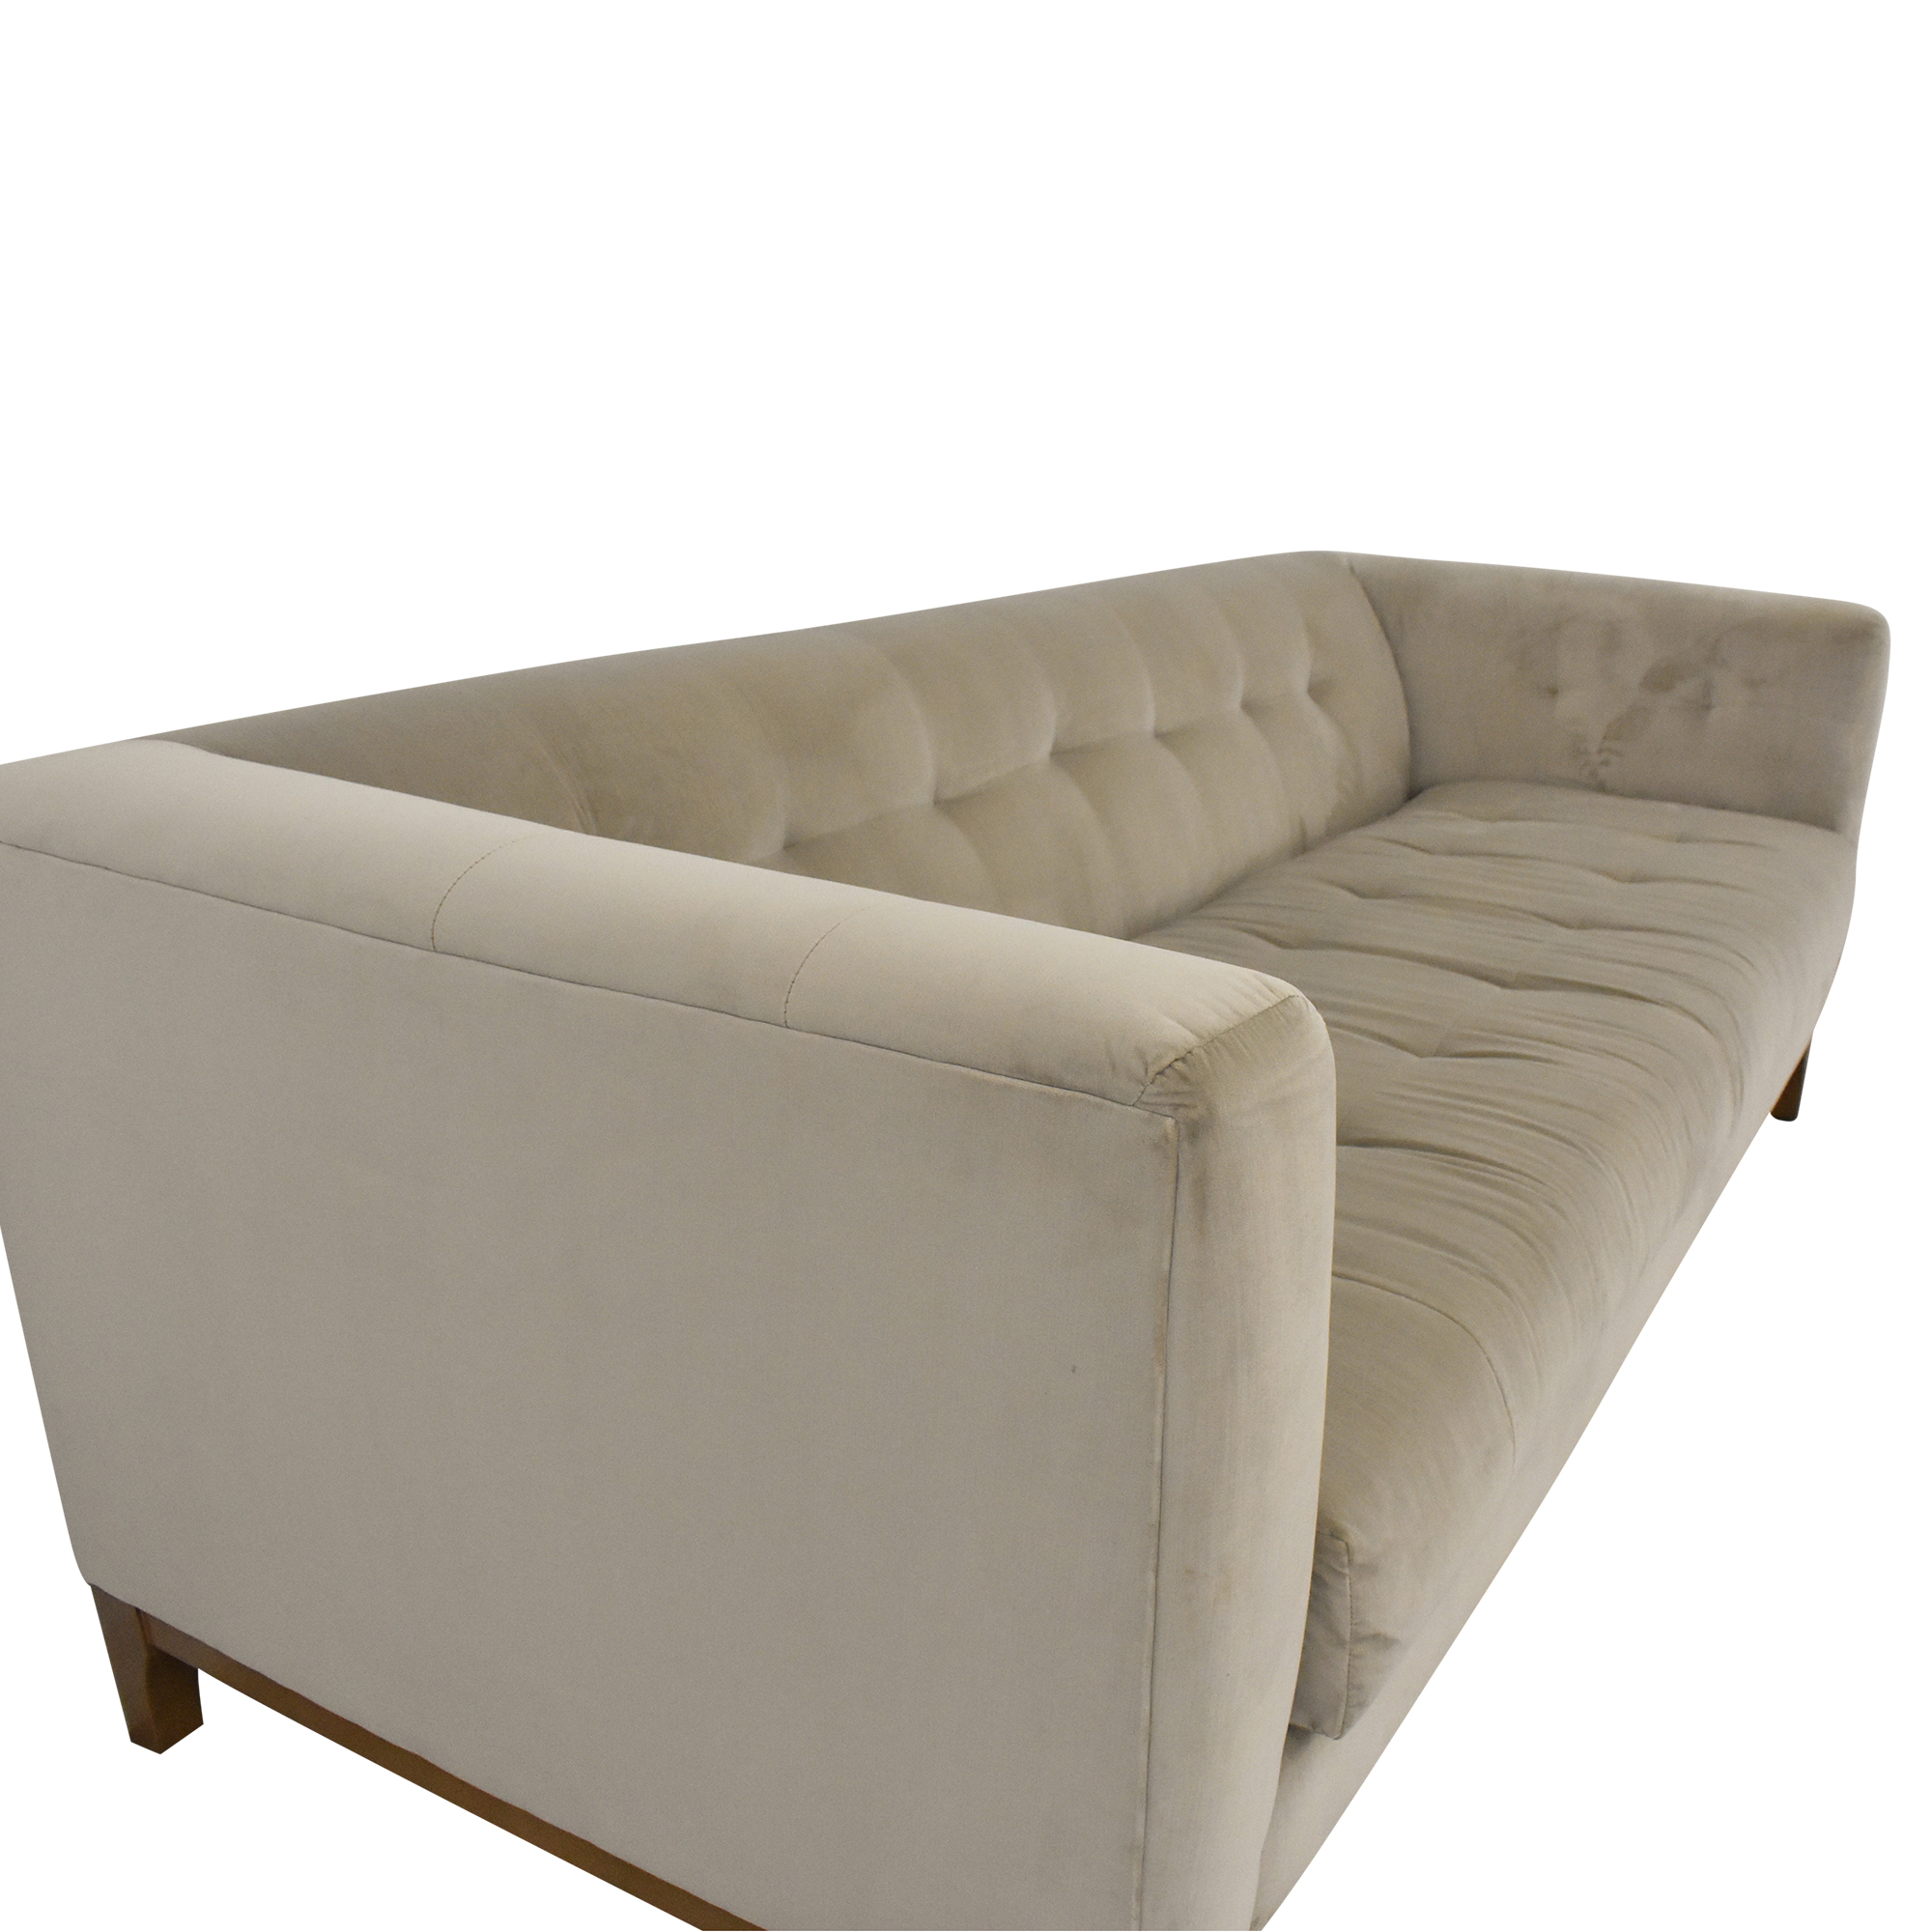 buy Macy's Martha Stewart Collection Brookline Sofa Macy's Classic Sofas